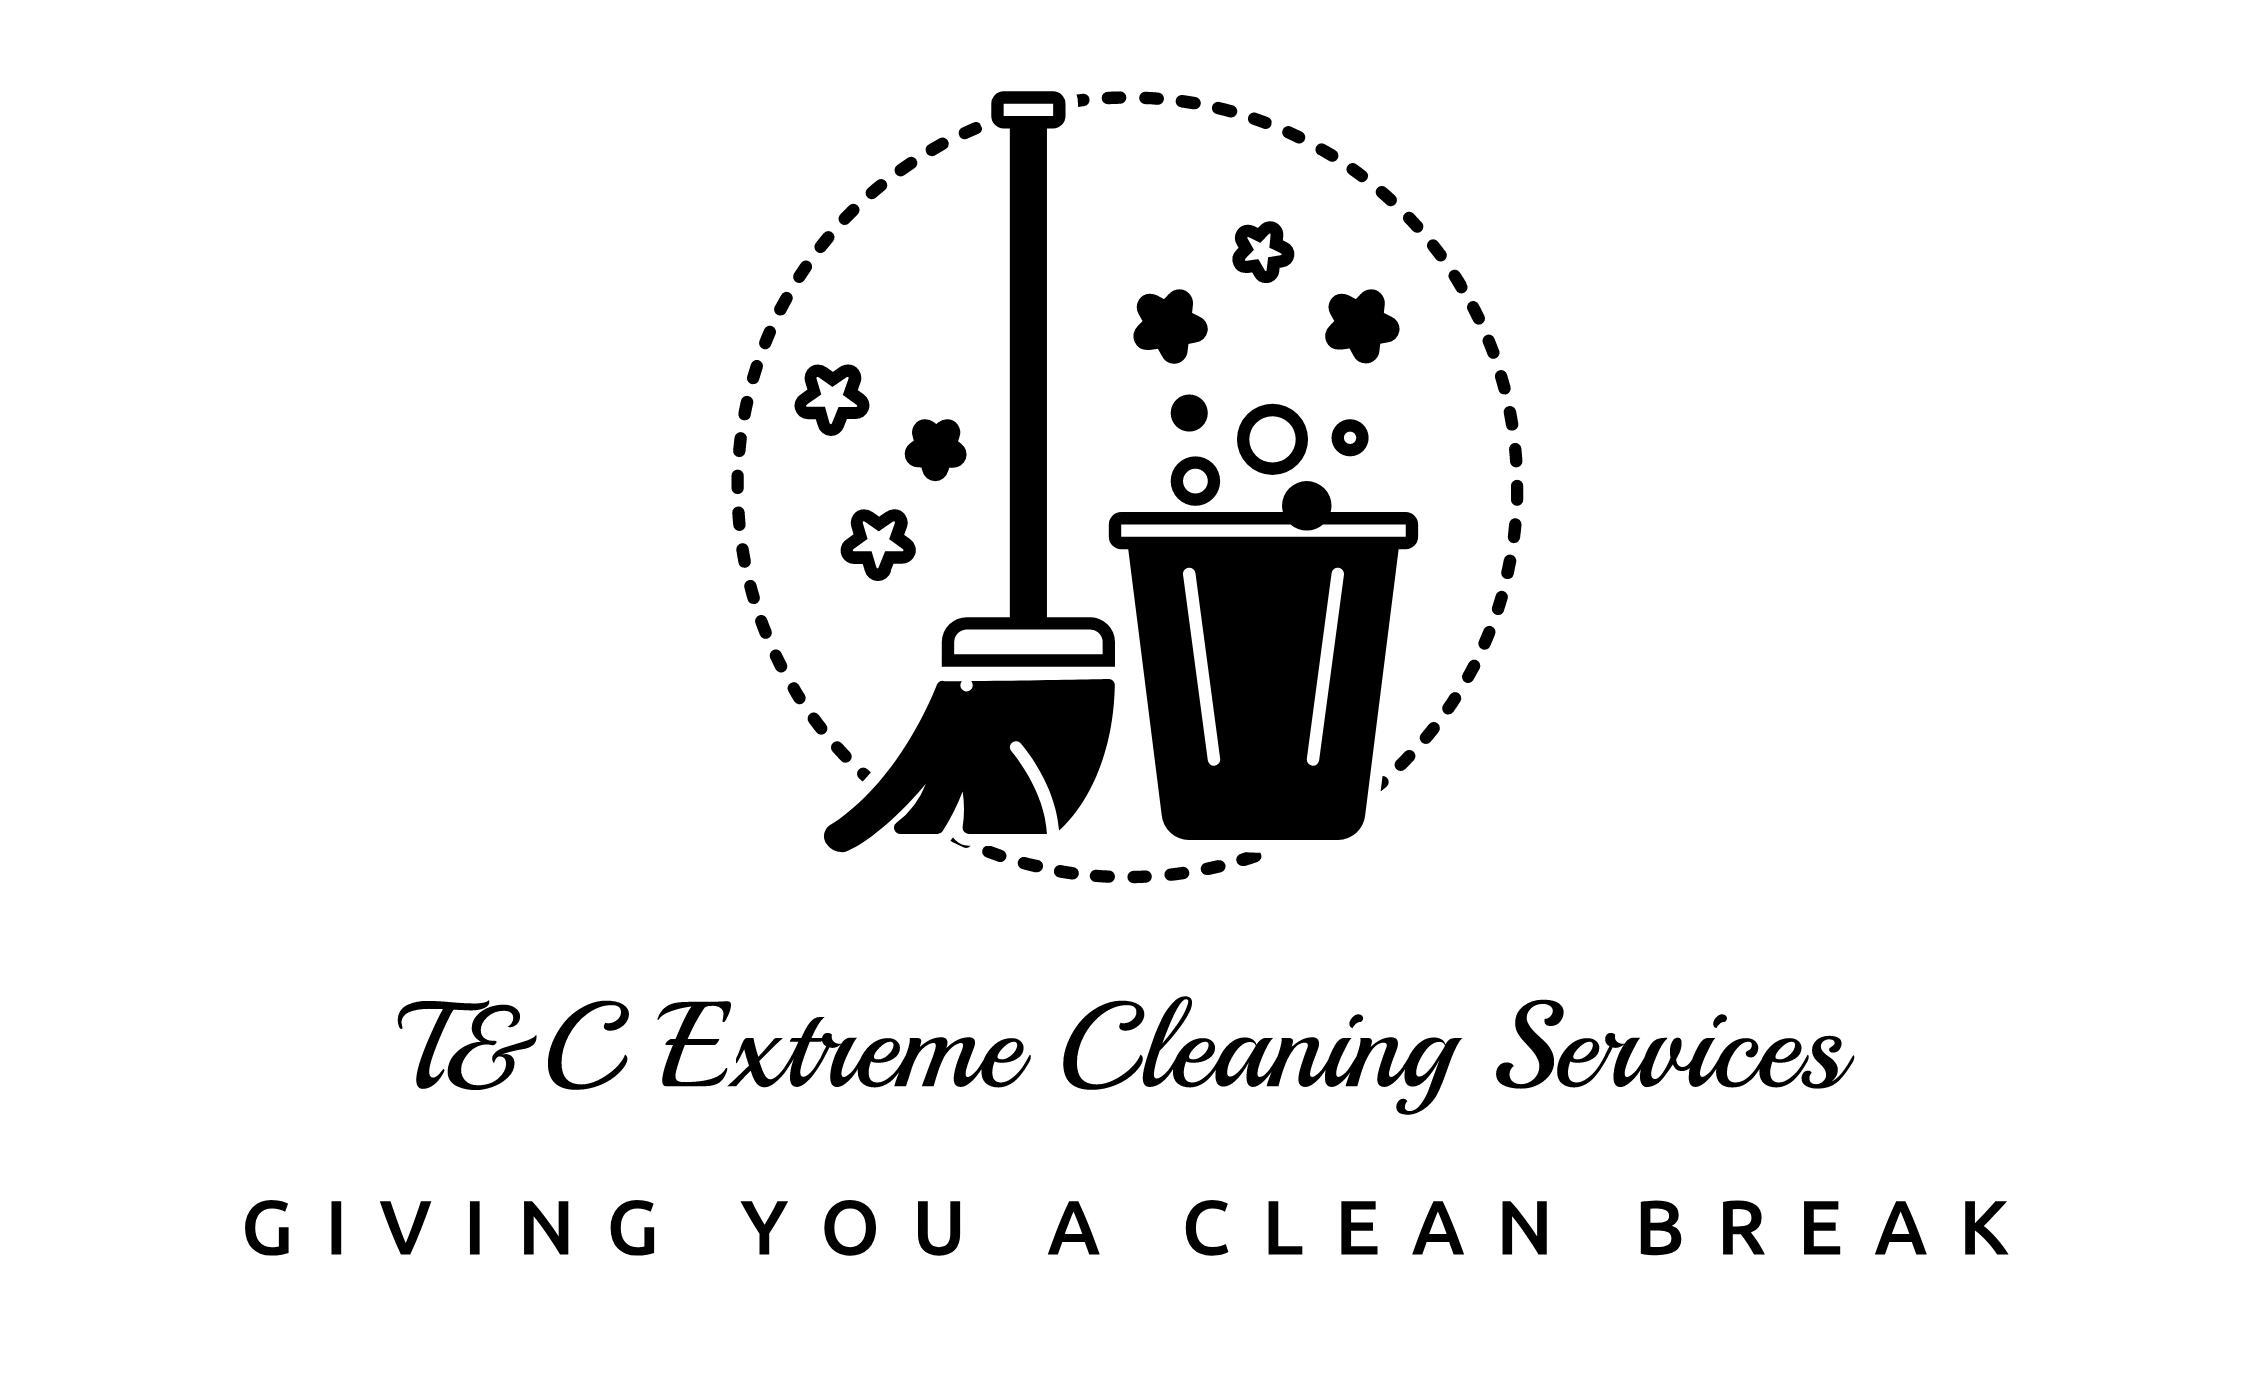 T&C Extreme Cleaning Services